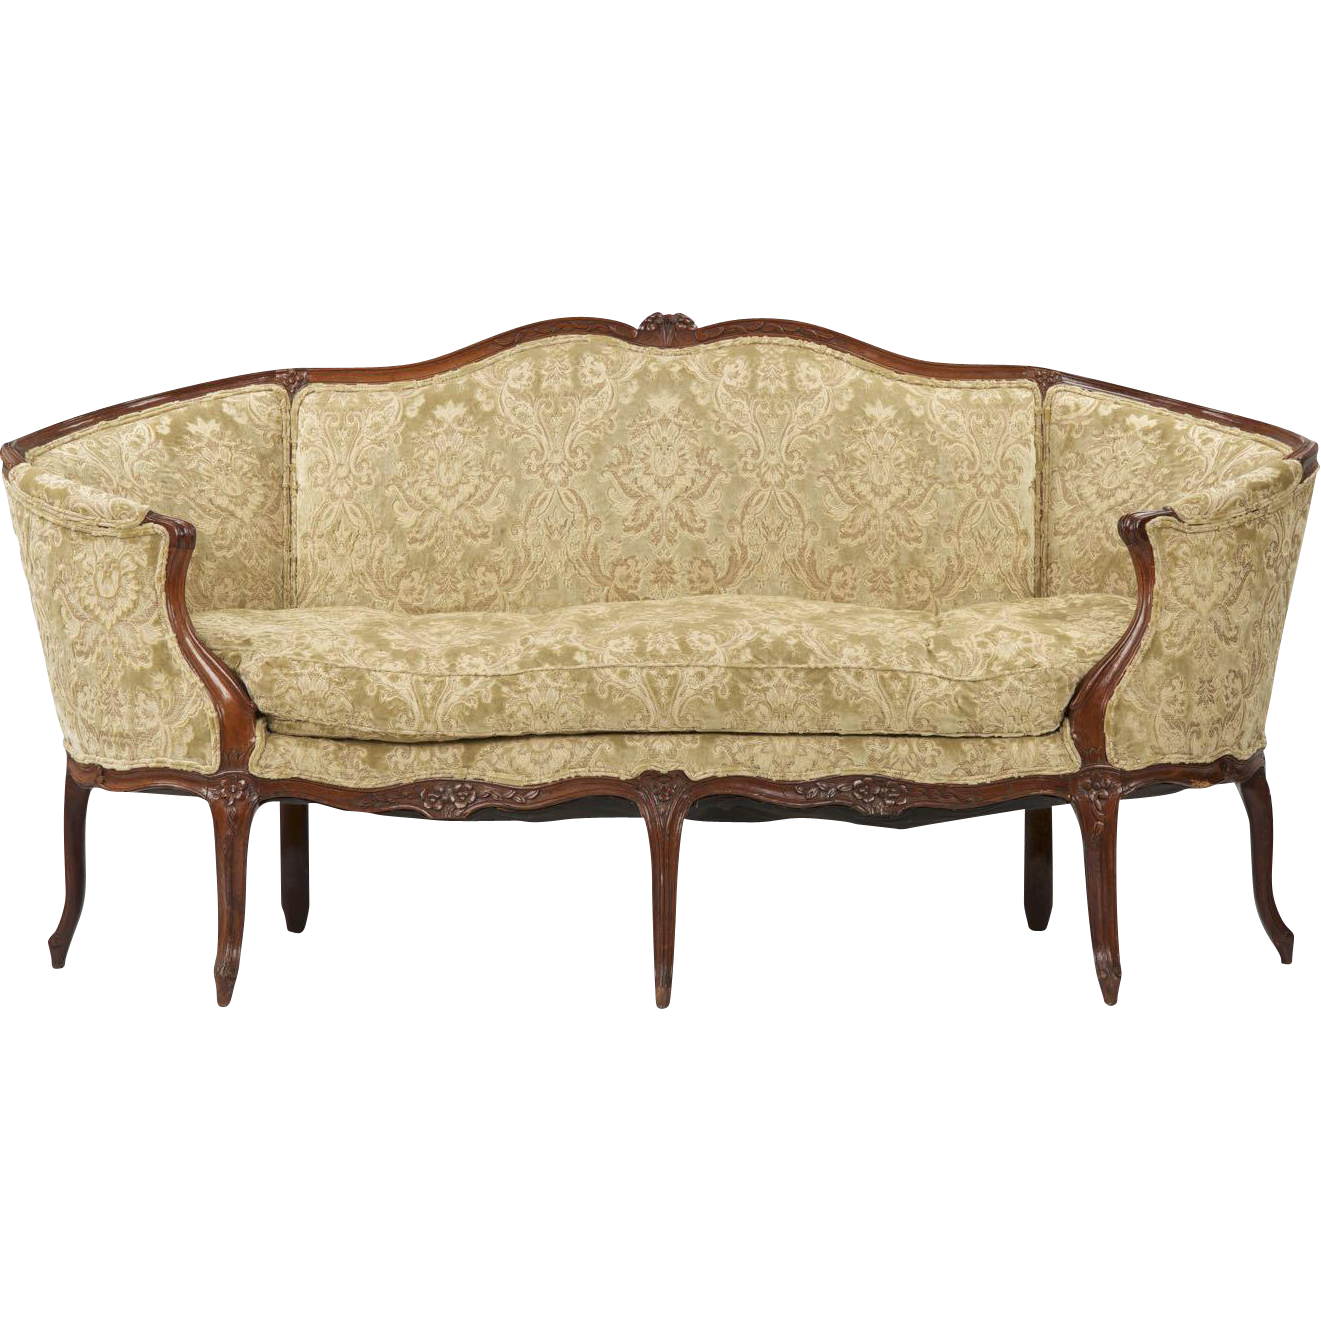 Louis xv french antique canape settee c 1750 from - Canape suedois vintage ...